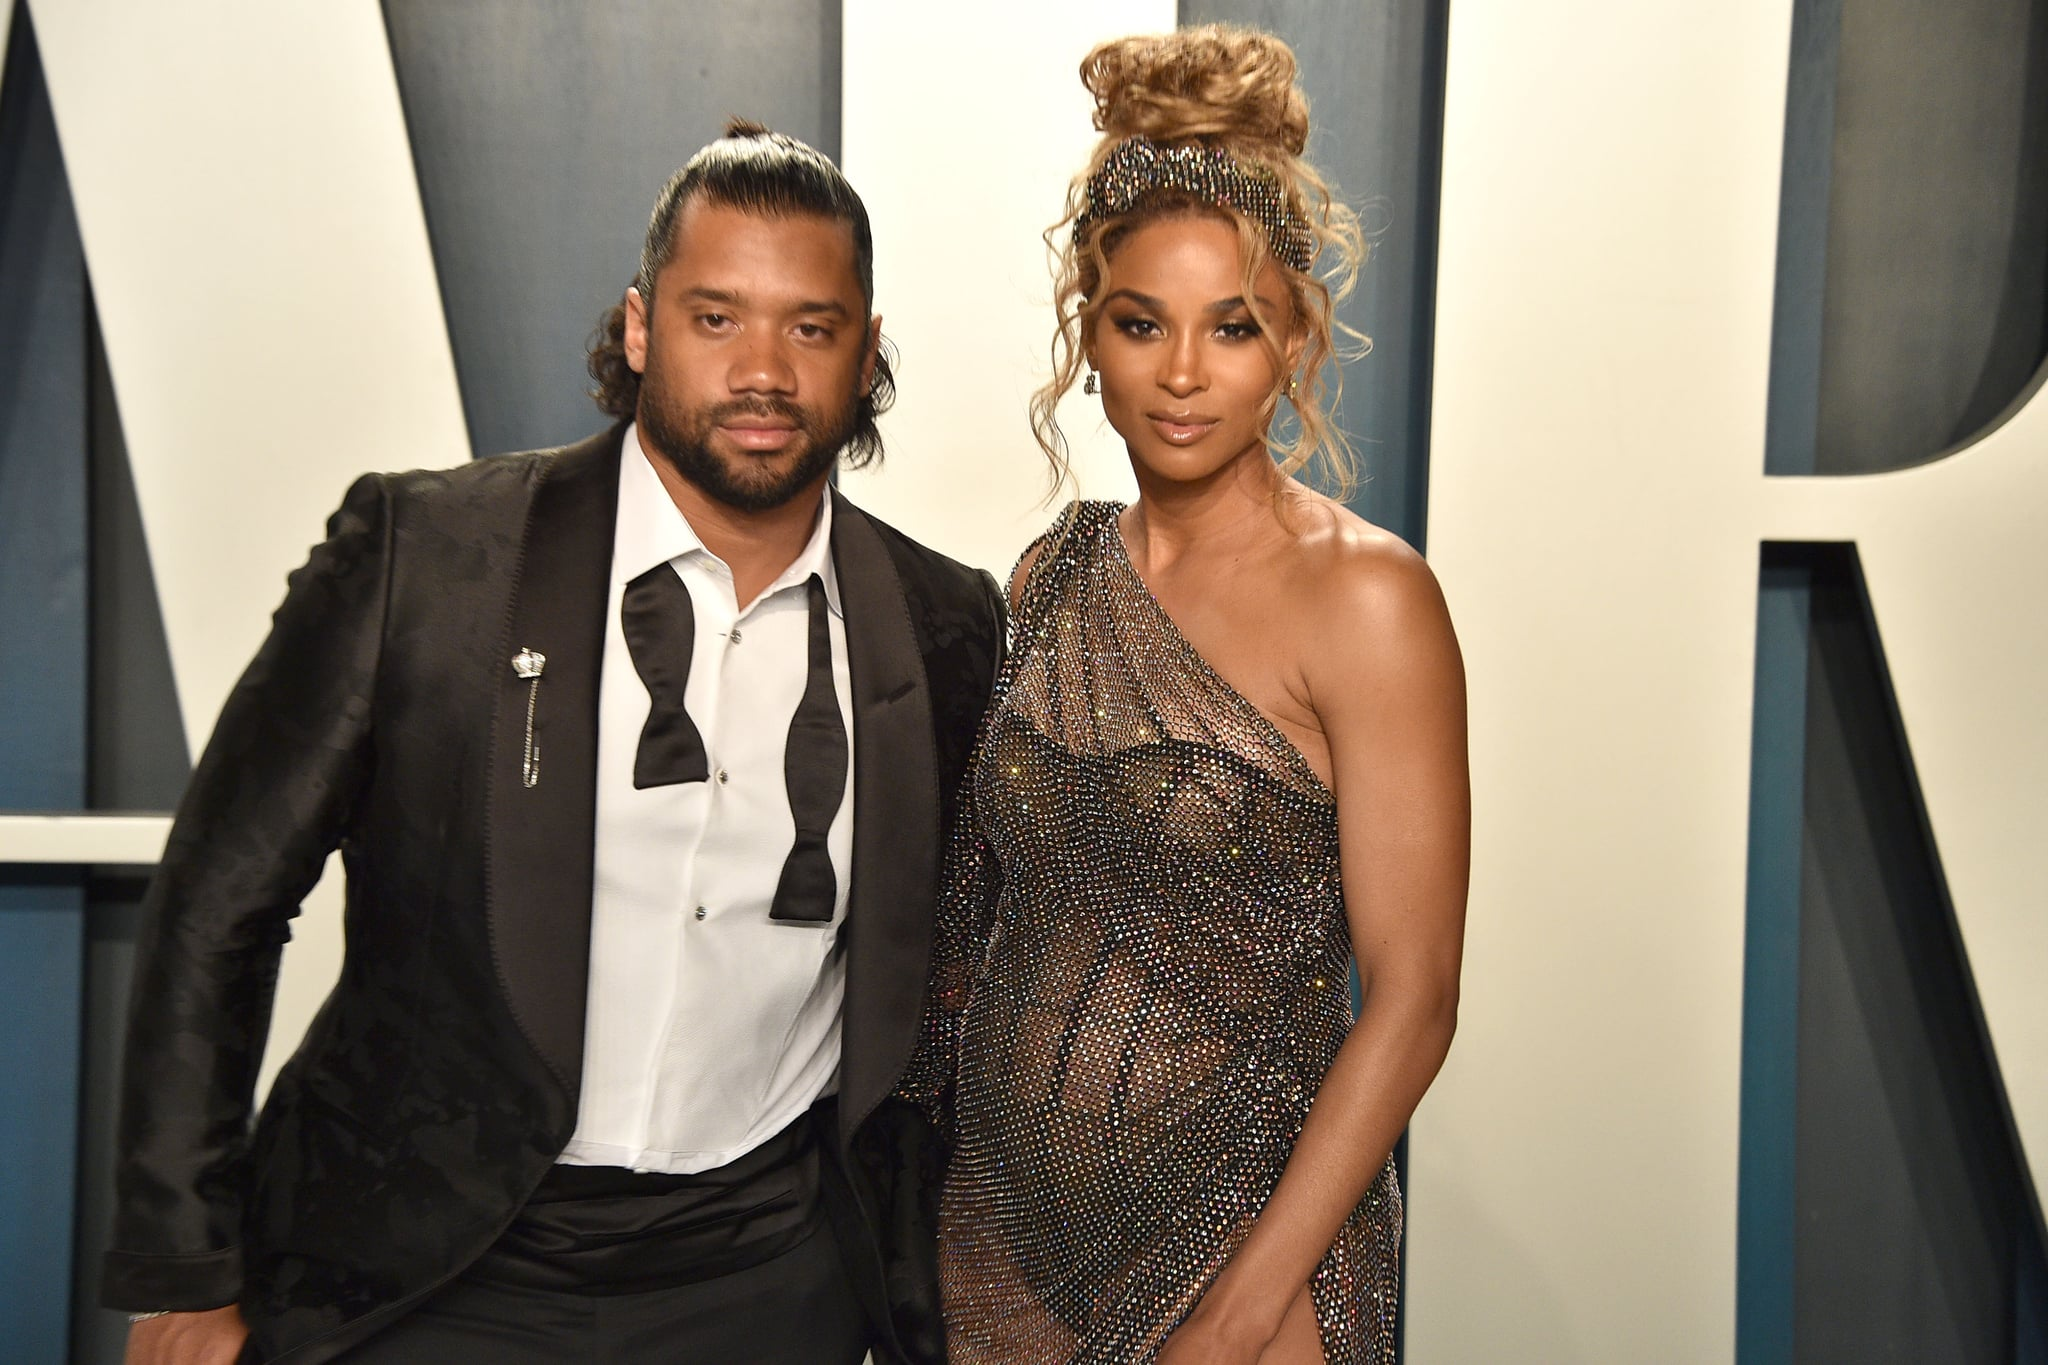 BEVERLY HILLS, CALIFORNIA - FEBRUARY 09: Russell Wilson and Ciara attend the 2020 Vanity Fair Oscar Party at Wallis Annenberg Center for the Performing Arts on February 09, 2020 in Beverly Hills, California. (Photo by David Crotty/Patrick McMullan via Getty Images)